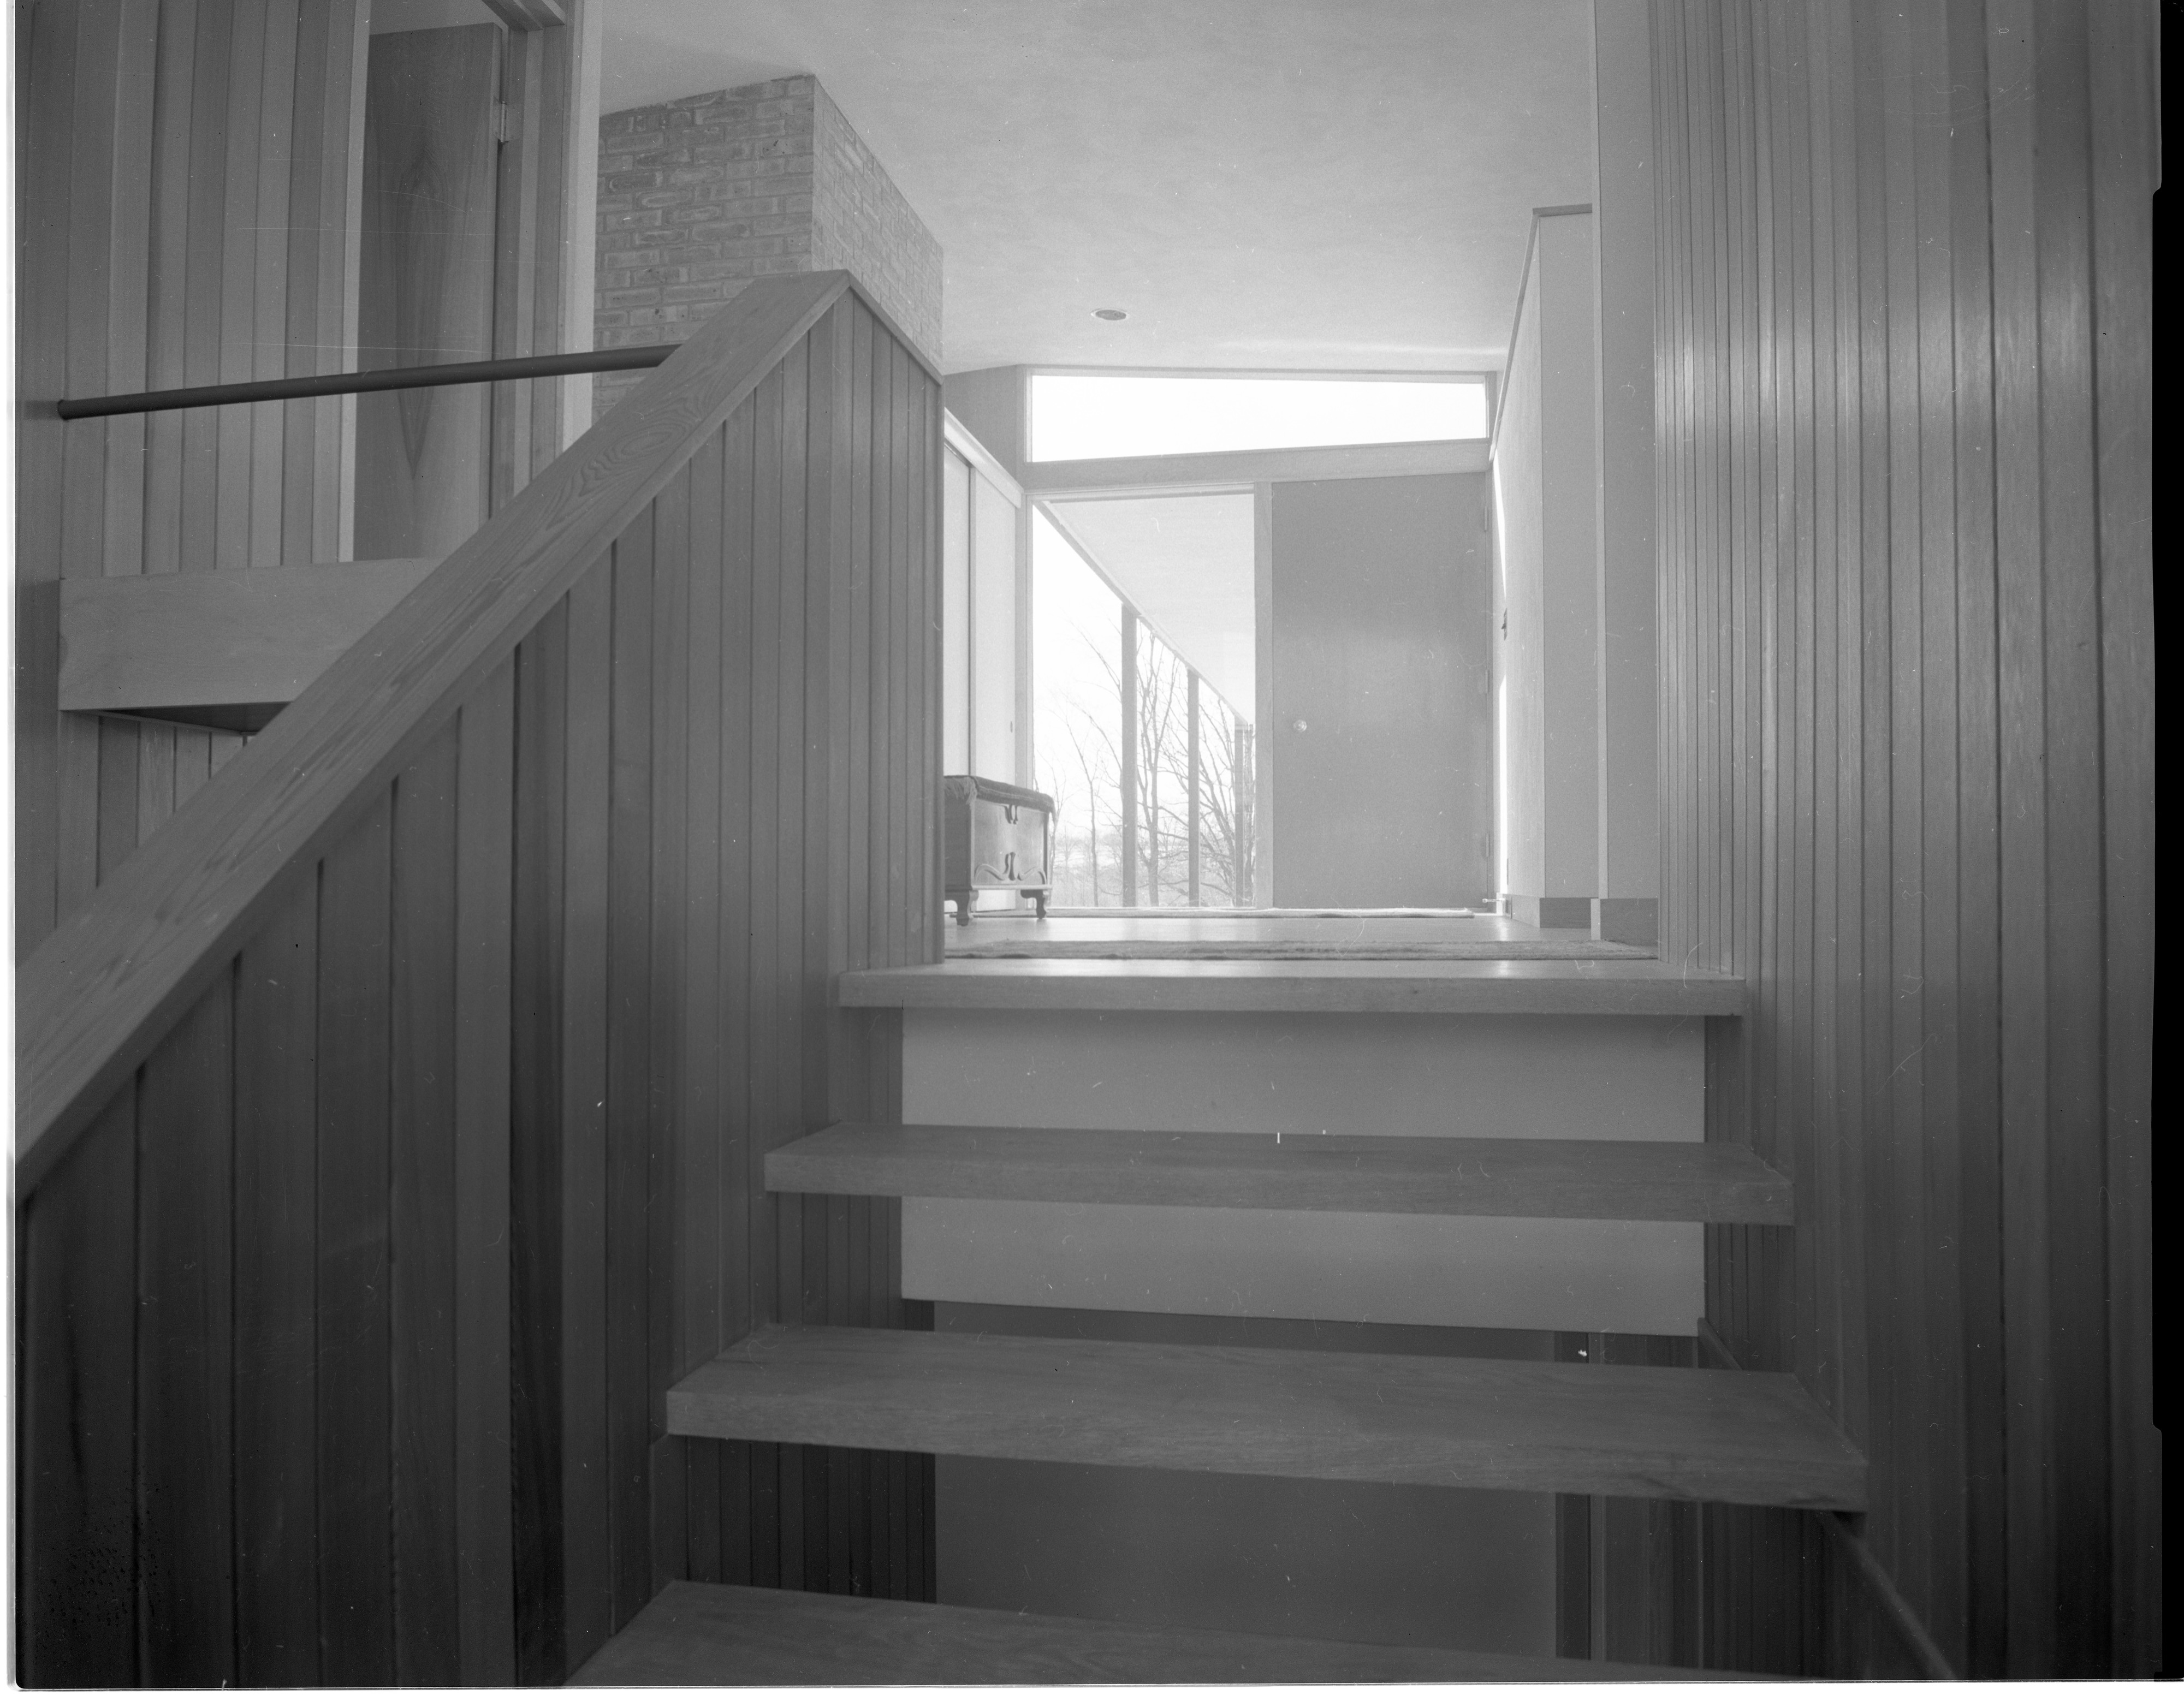 Metcalf Award-Winning Design Provides Easy Access To All Rooms, February 1955 image